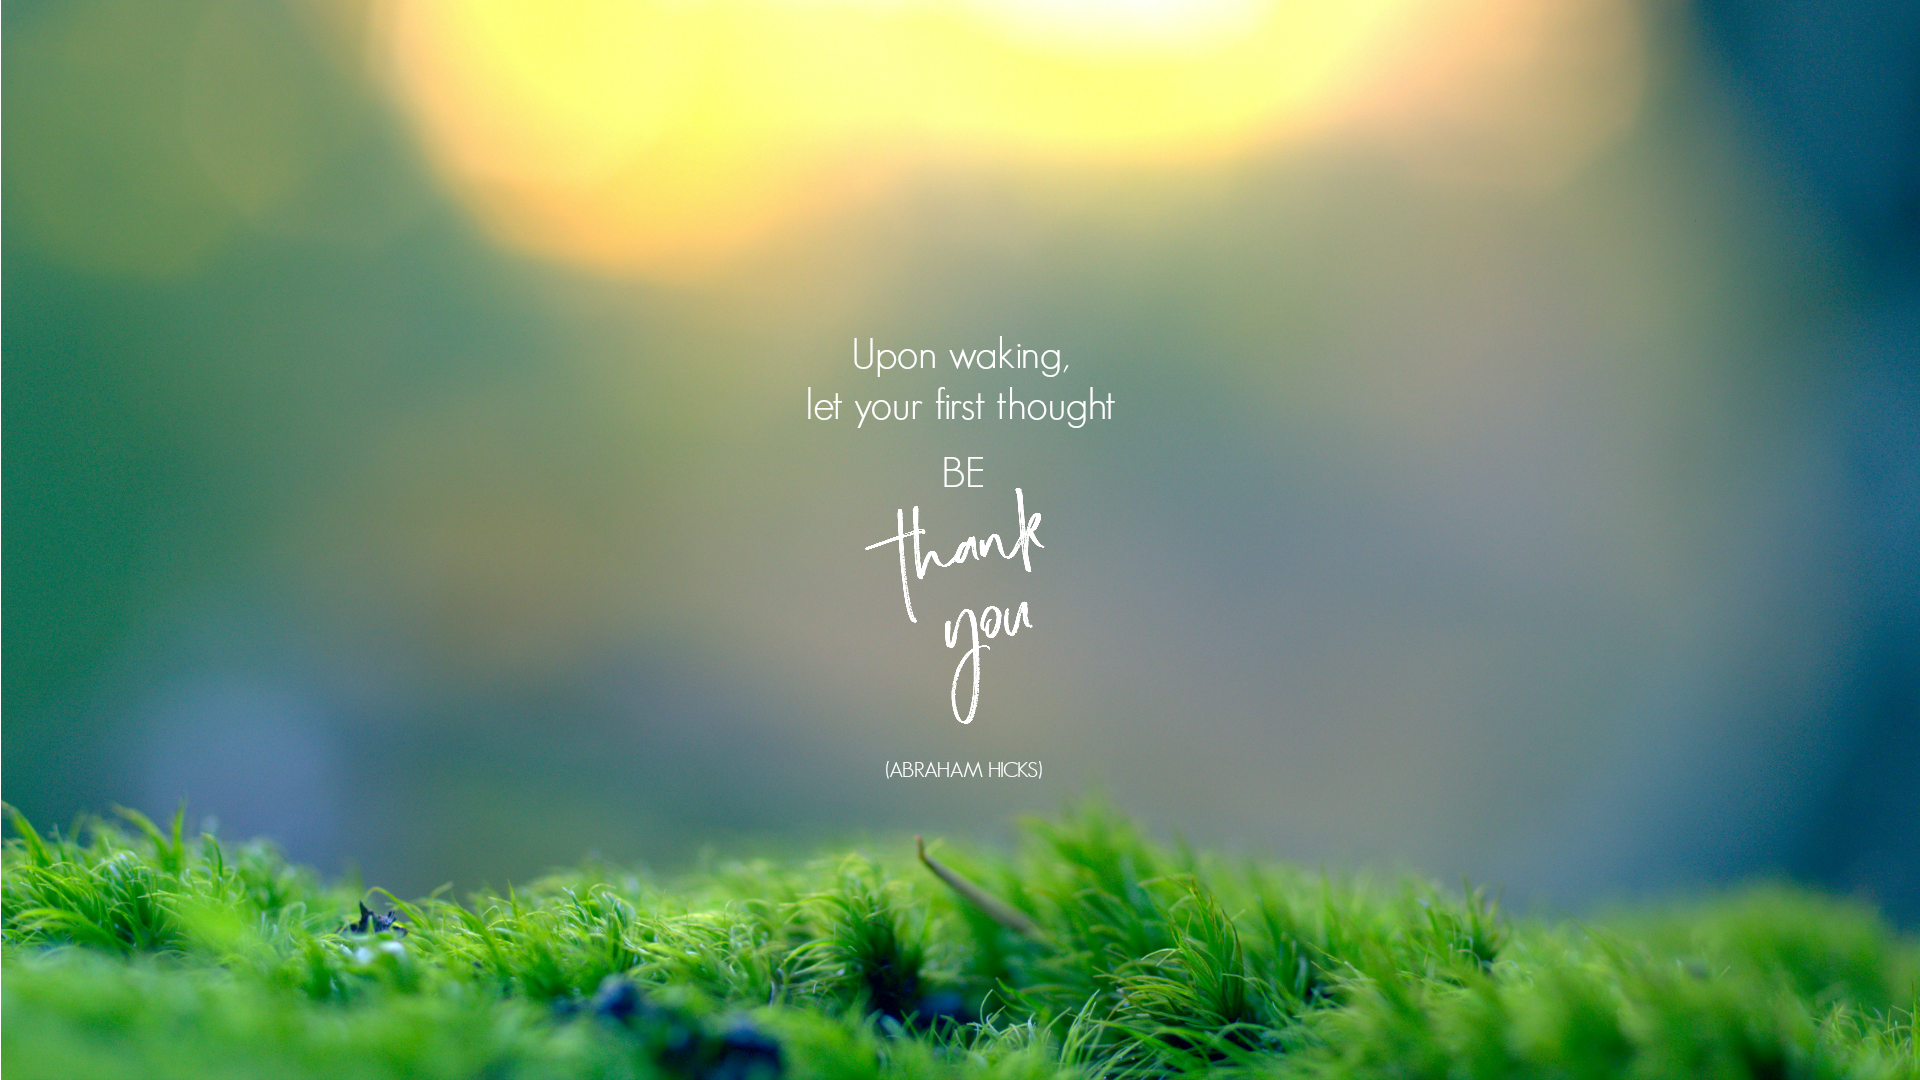 Upon waking, let your first thought be thank you. Abraham Hicks. Circle of Daydreams. www.circleofdaydreams.com